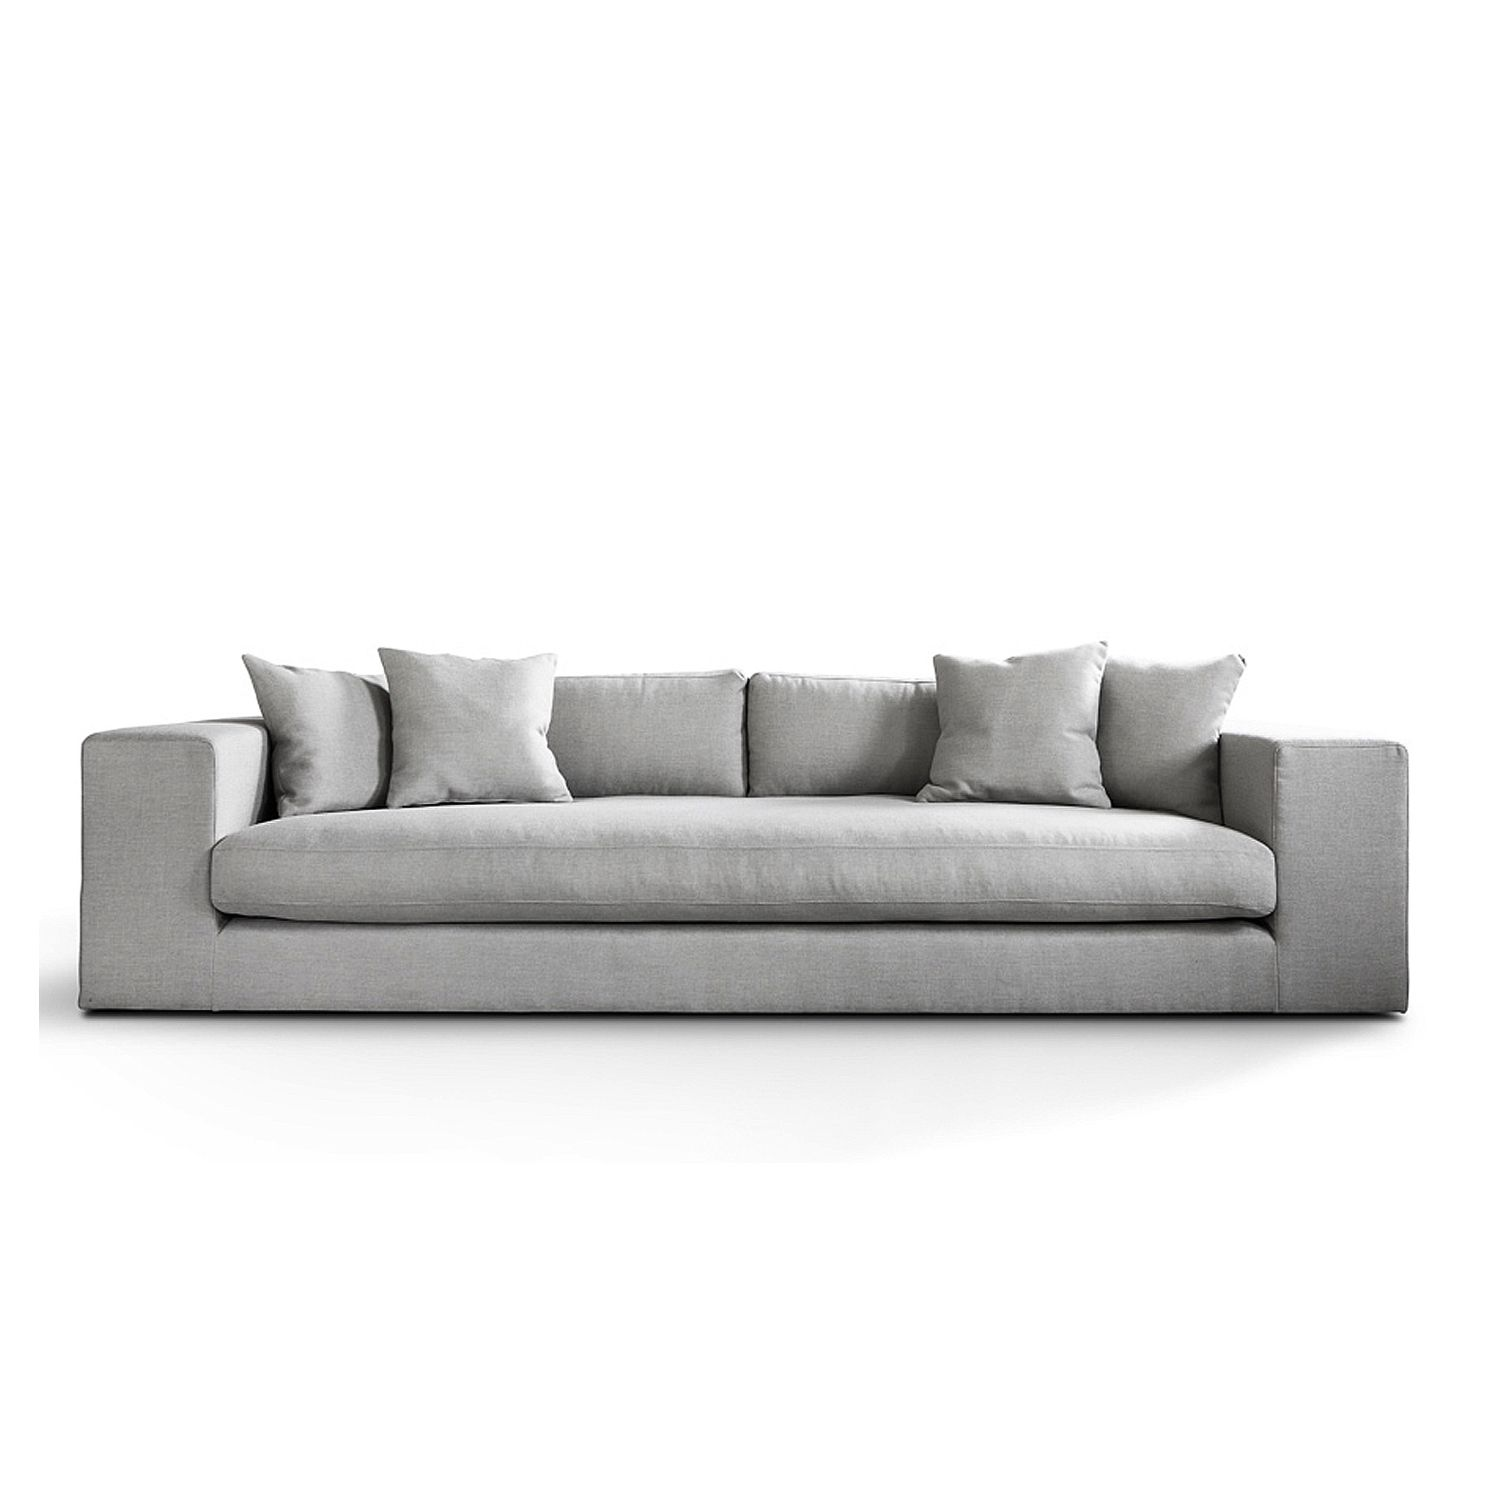 Pin By Sofafrom Com On Sofas Luxury Sofa Sofa Design Couch Furniture